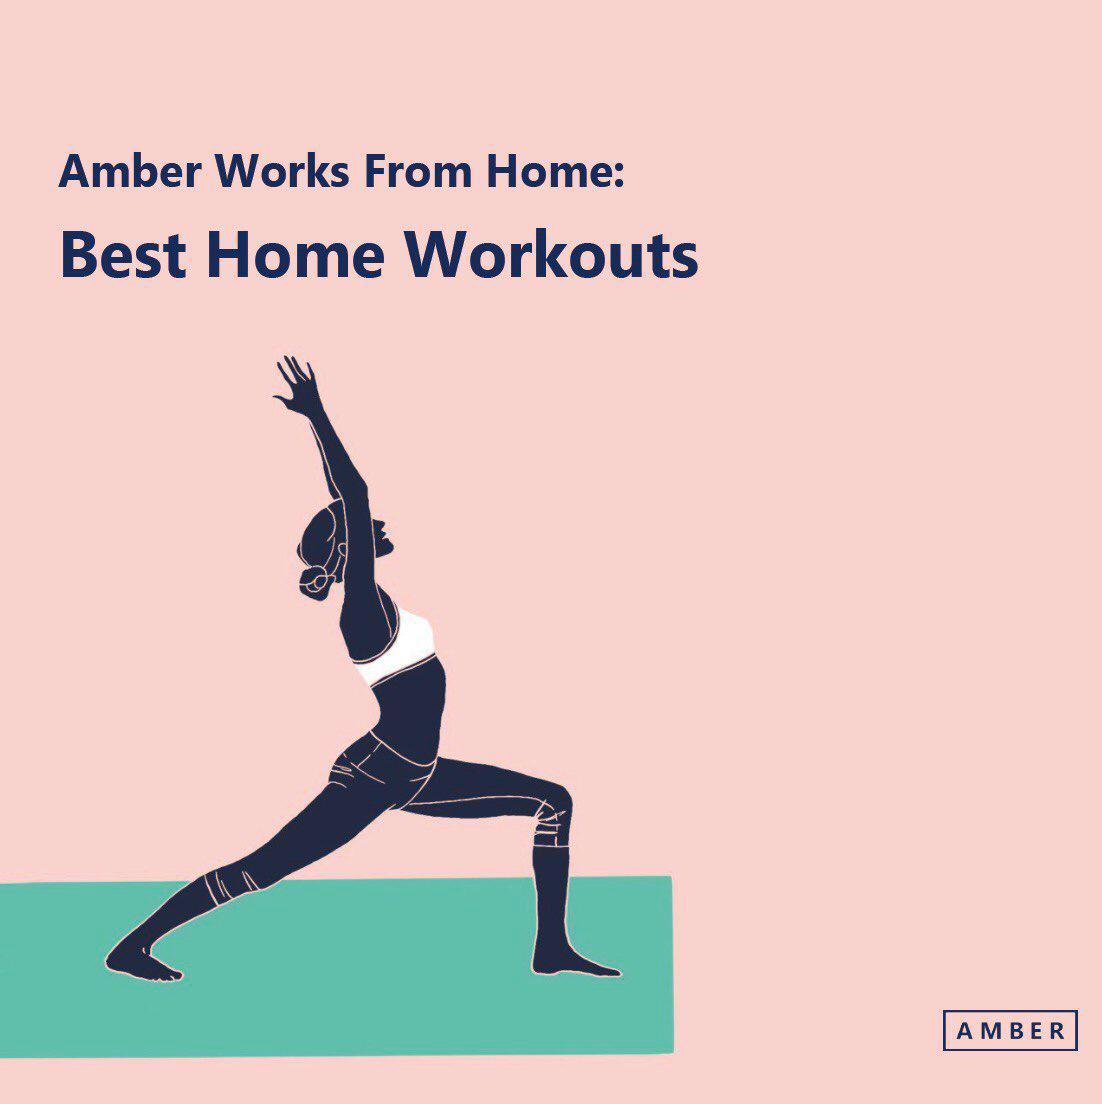 Amber Works from Home: Best Home Workouts